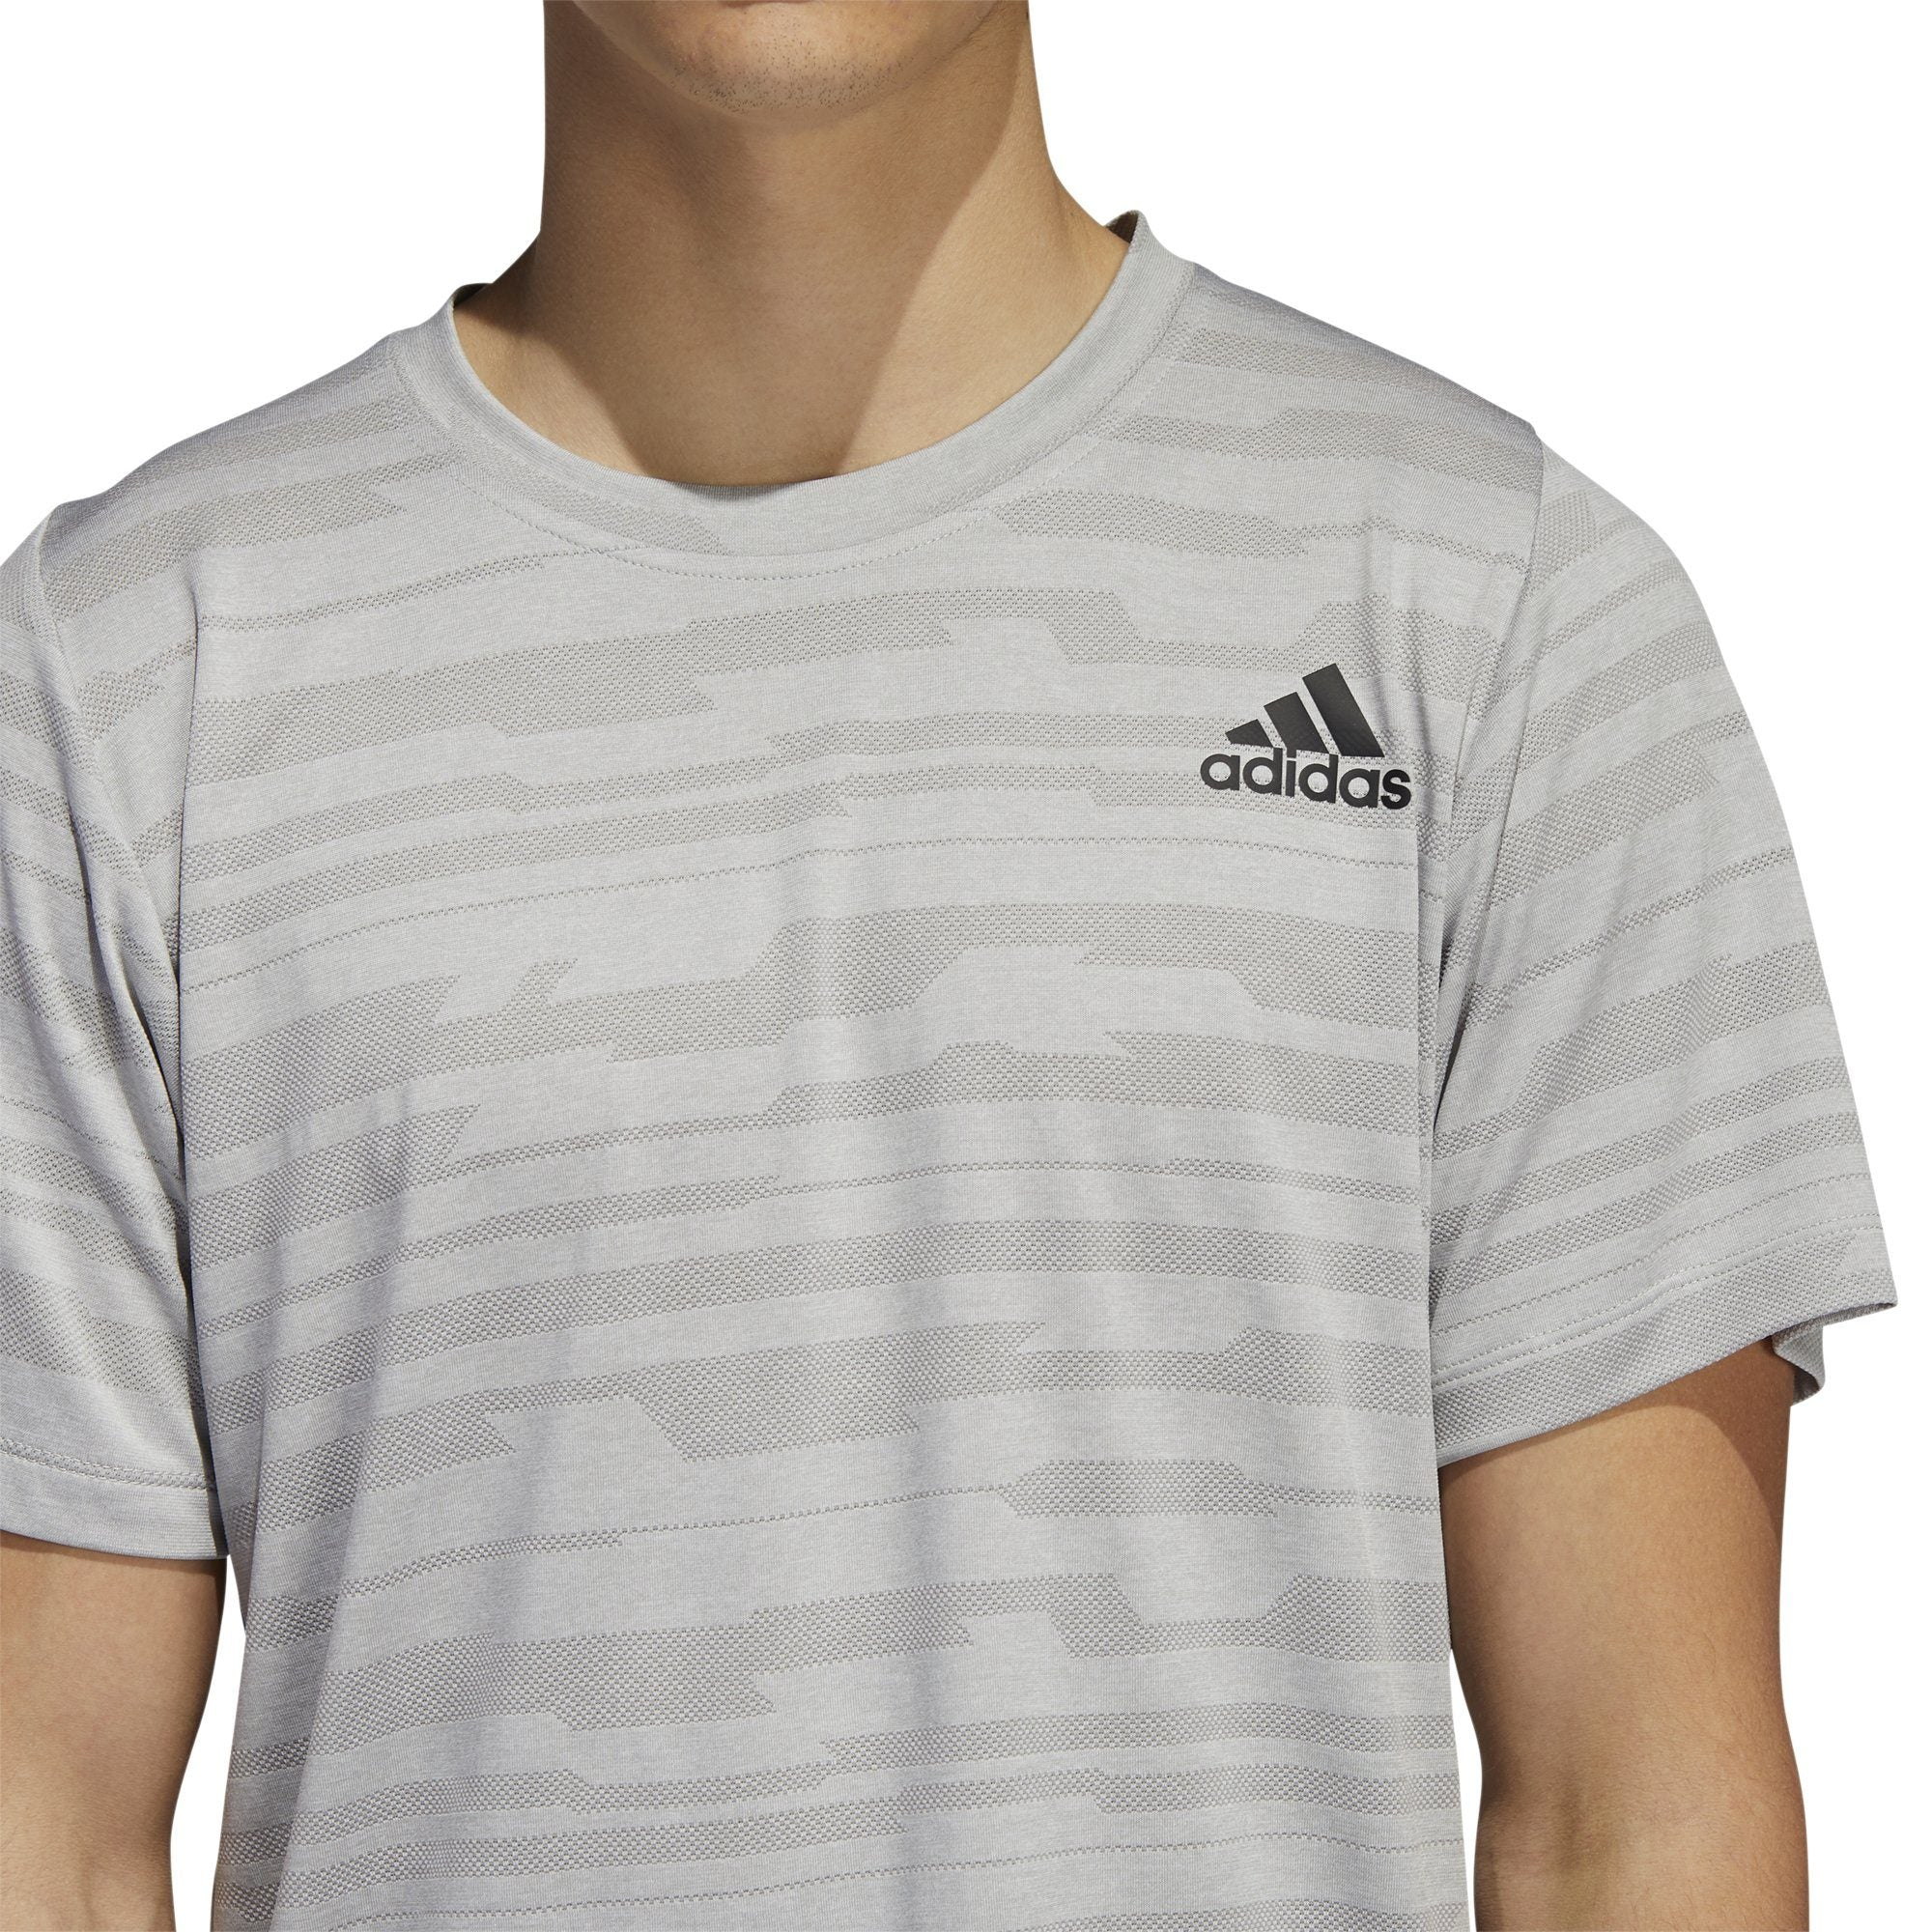 Adidas Mens FreeLift Engineered Heather Tee - mgh solid grey SP-ApparelTees-Mens Adidas